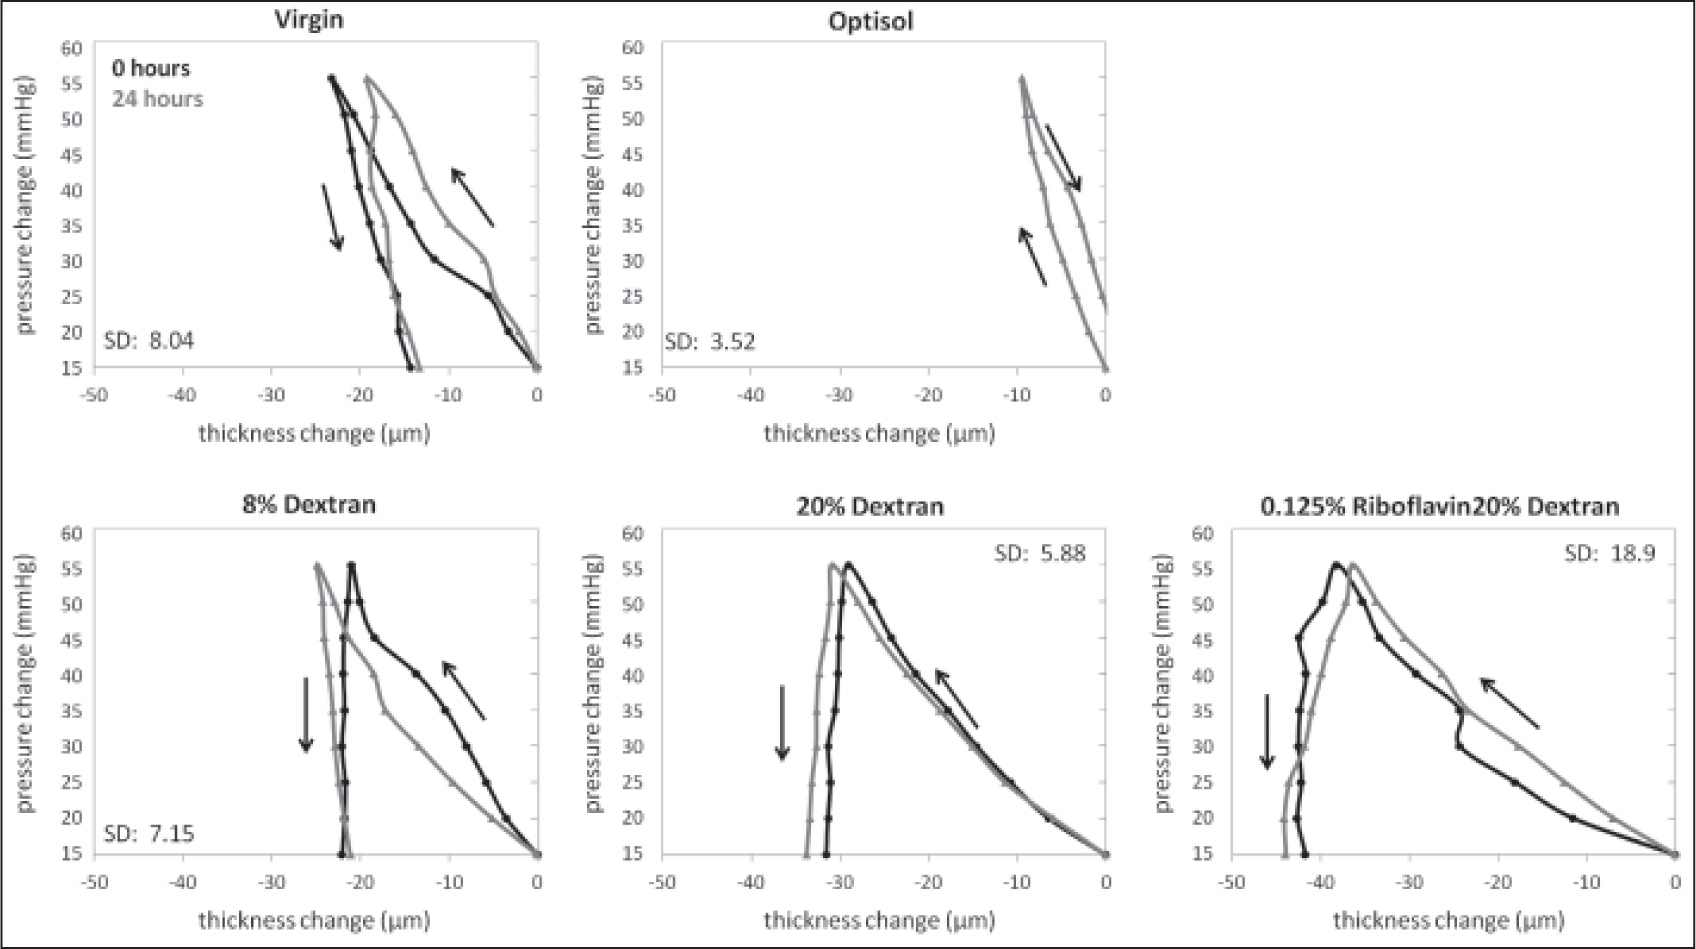 Corneal thickness response to intraocular pressure variation. The black lines represent 0 hours data and the grey lines 24 hours data. Intraocular pressure variation is with respect to 15 mm Hg initial intraocular pressure.